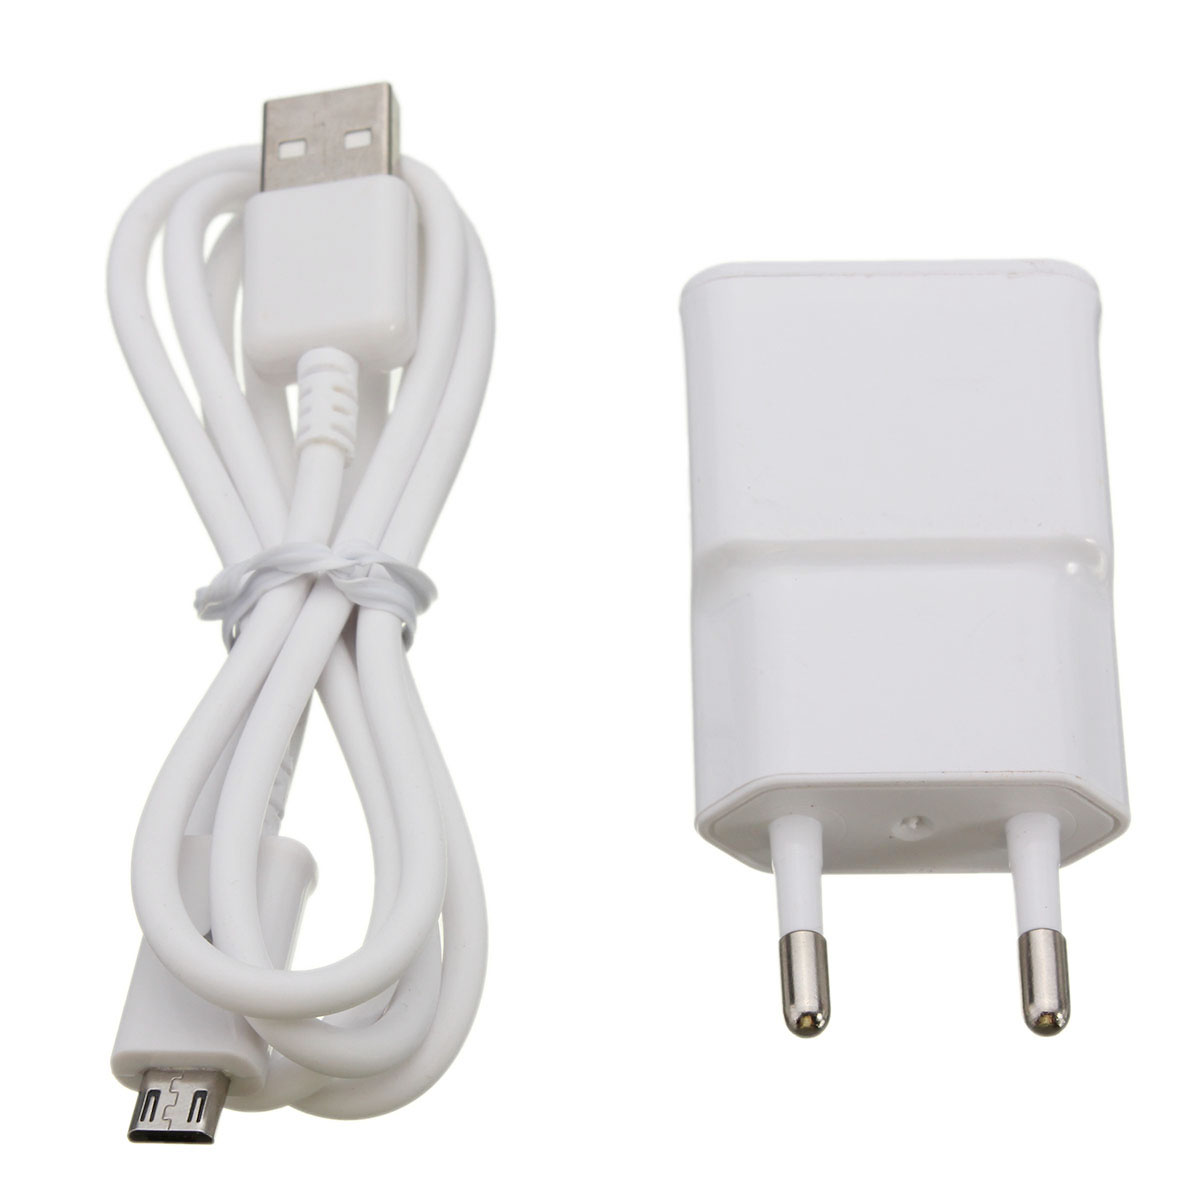 6. Micro USB Cable & Power Adapter